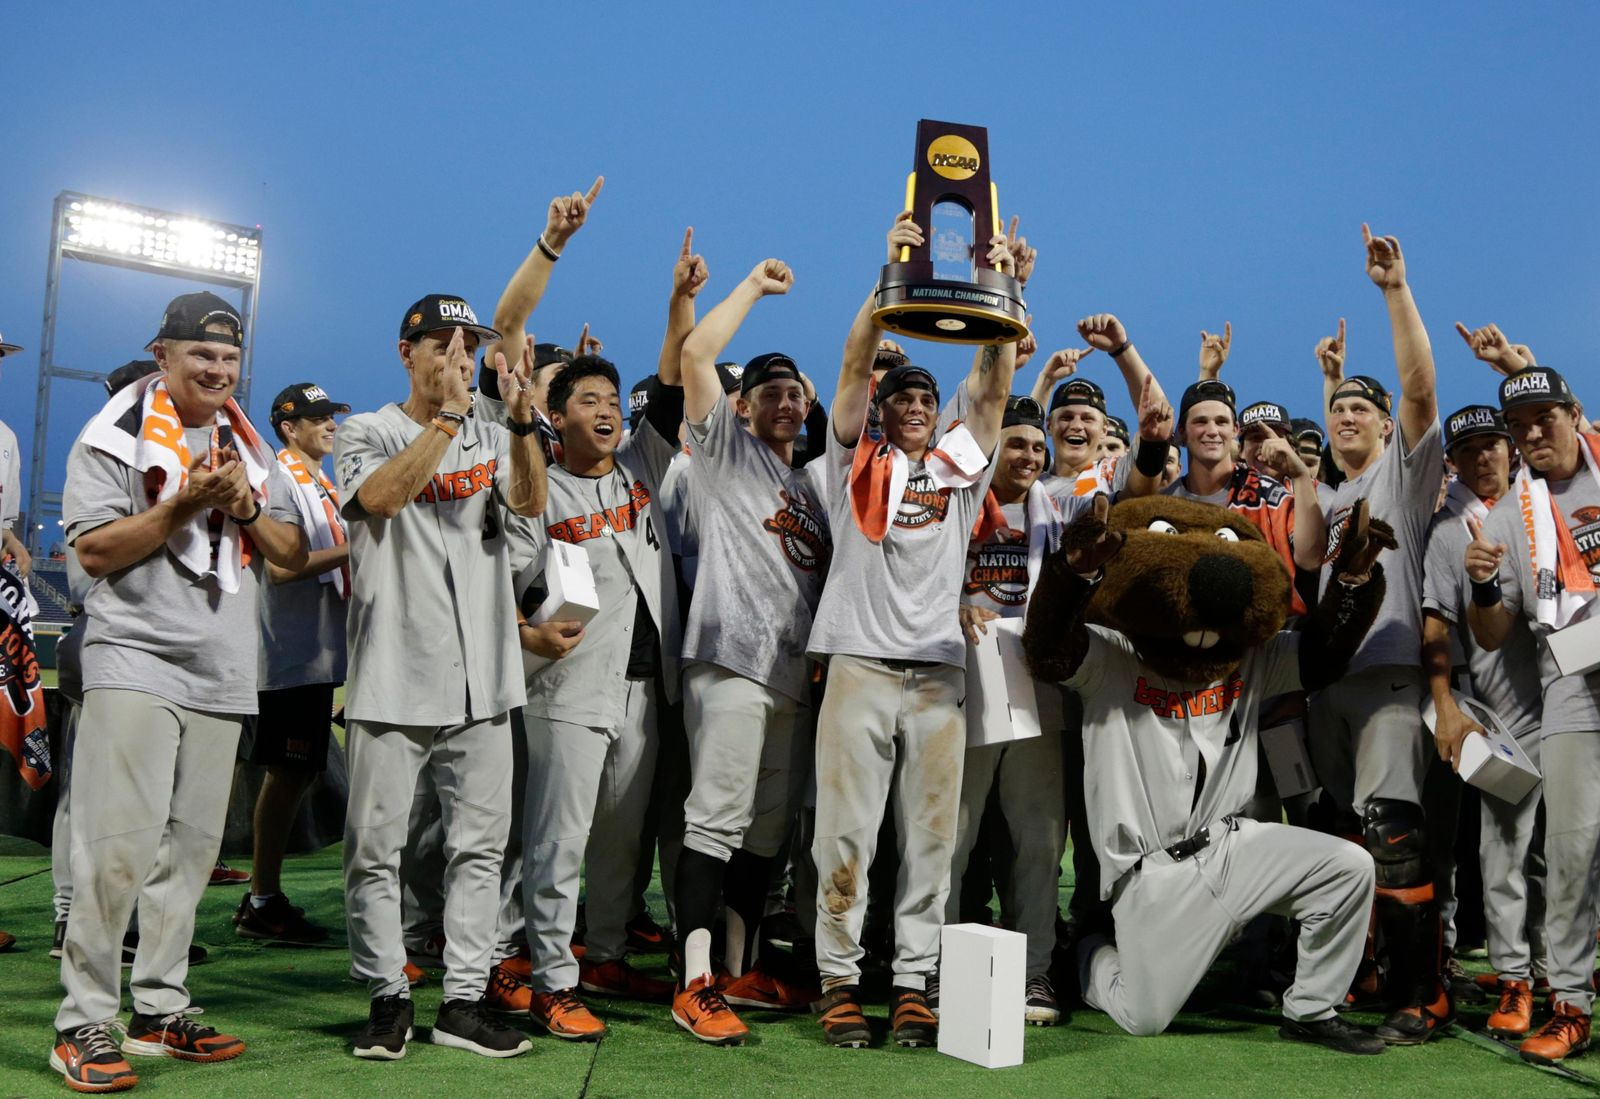 Oregon State players and coaches celebrate with their mascot and the trophy after they beat Arkansas 5-0 in Game 3 to win the NCAA College World Series baseball finals, Thursday, June 28, 2018, in Omaha, Neb. (AP Photo/Nati Harnik)